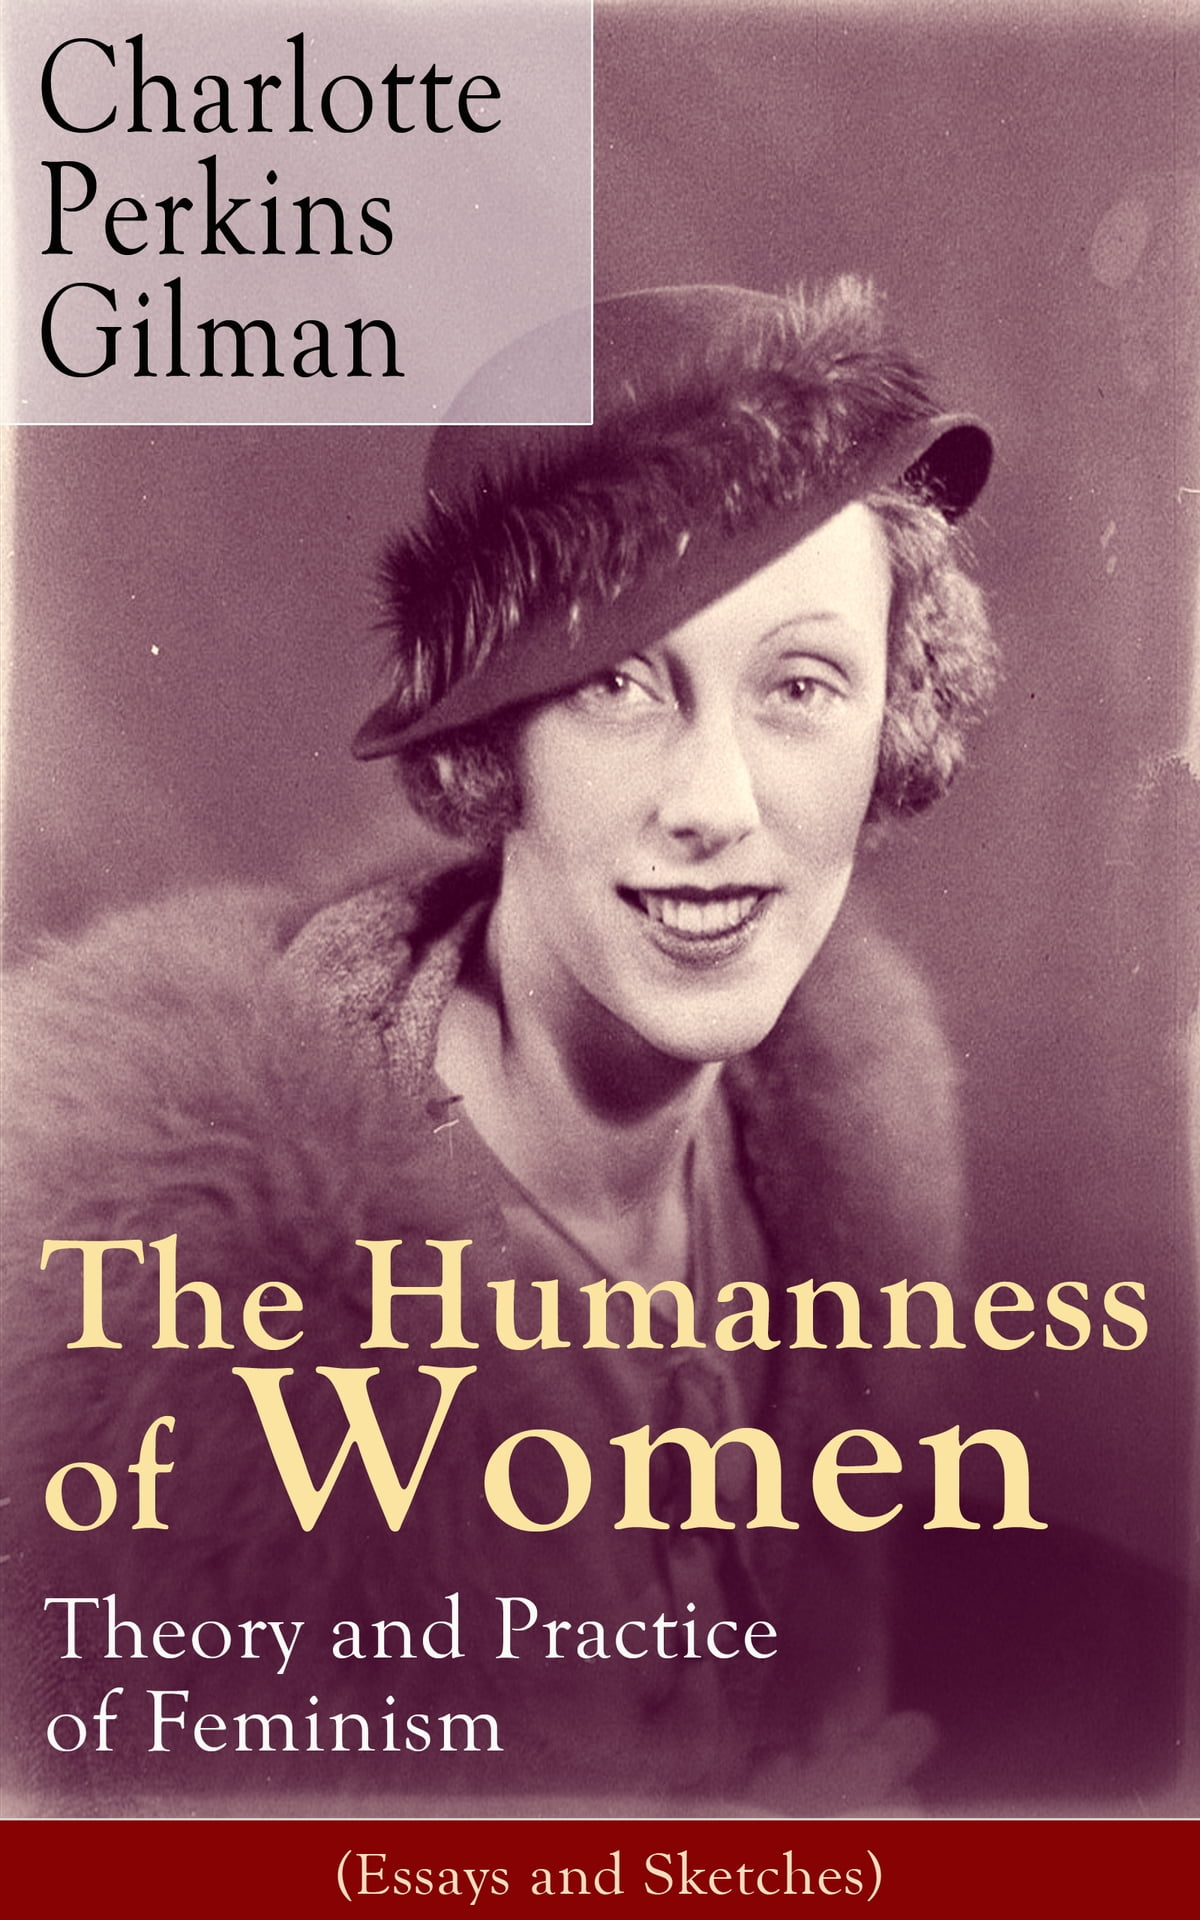 the humanness of women theory and practice of feminism essays the humanness of women theory and practice of feminism essays and sketches ebook by charlotte perkins gilman 9788026833451 rakuten kobo